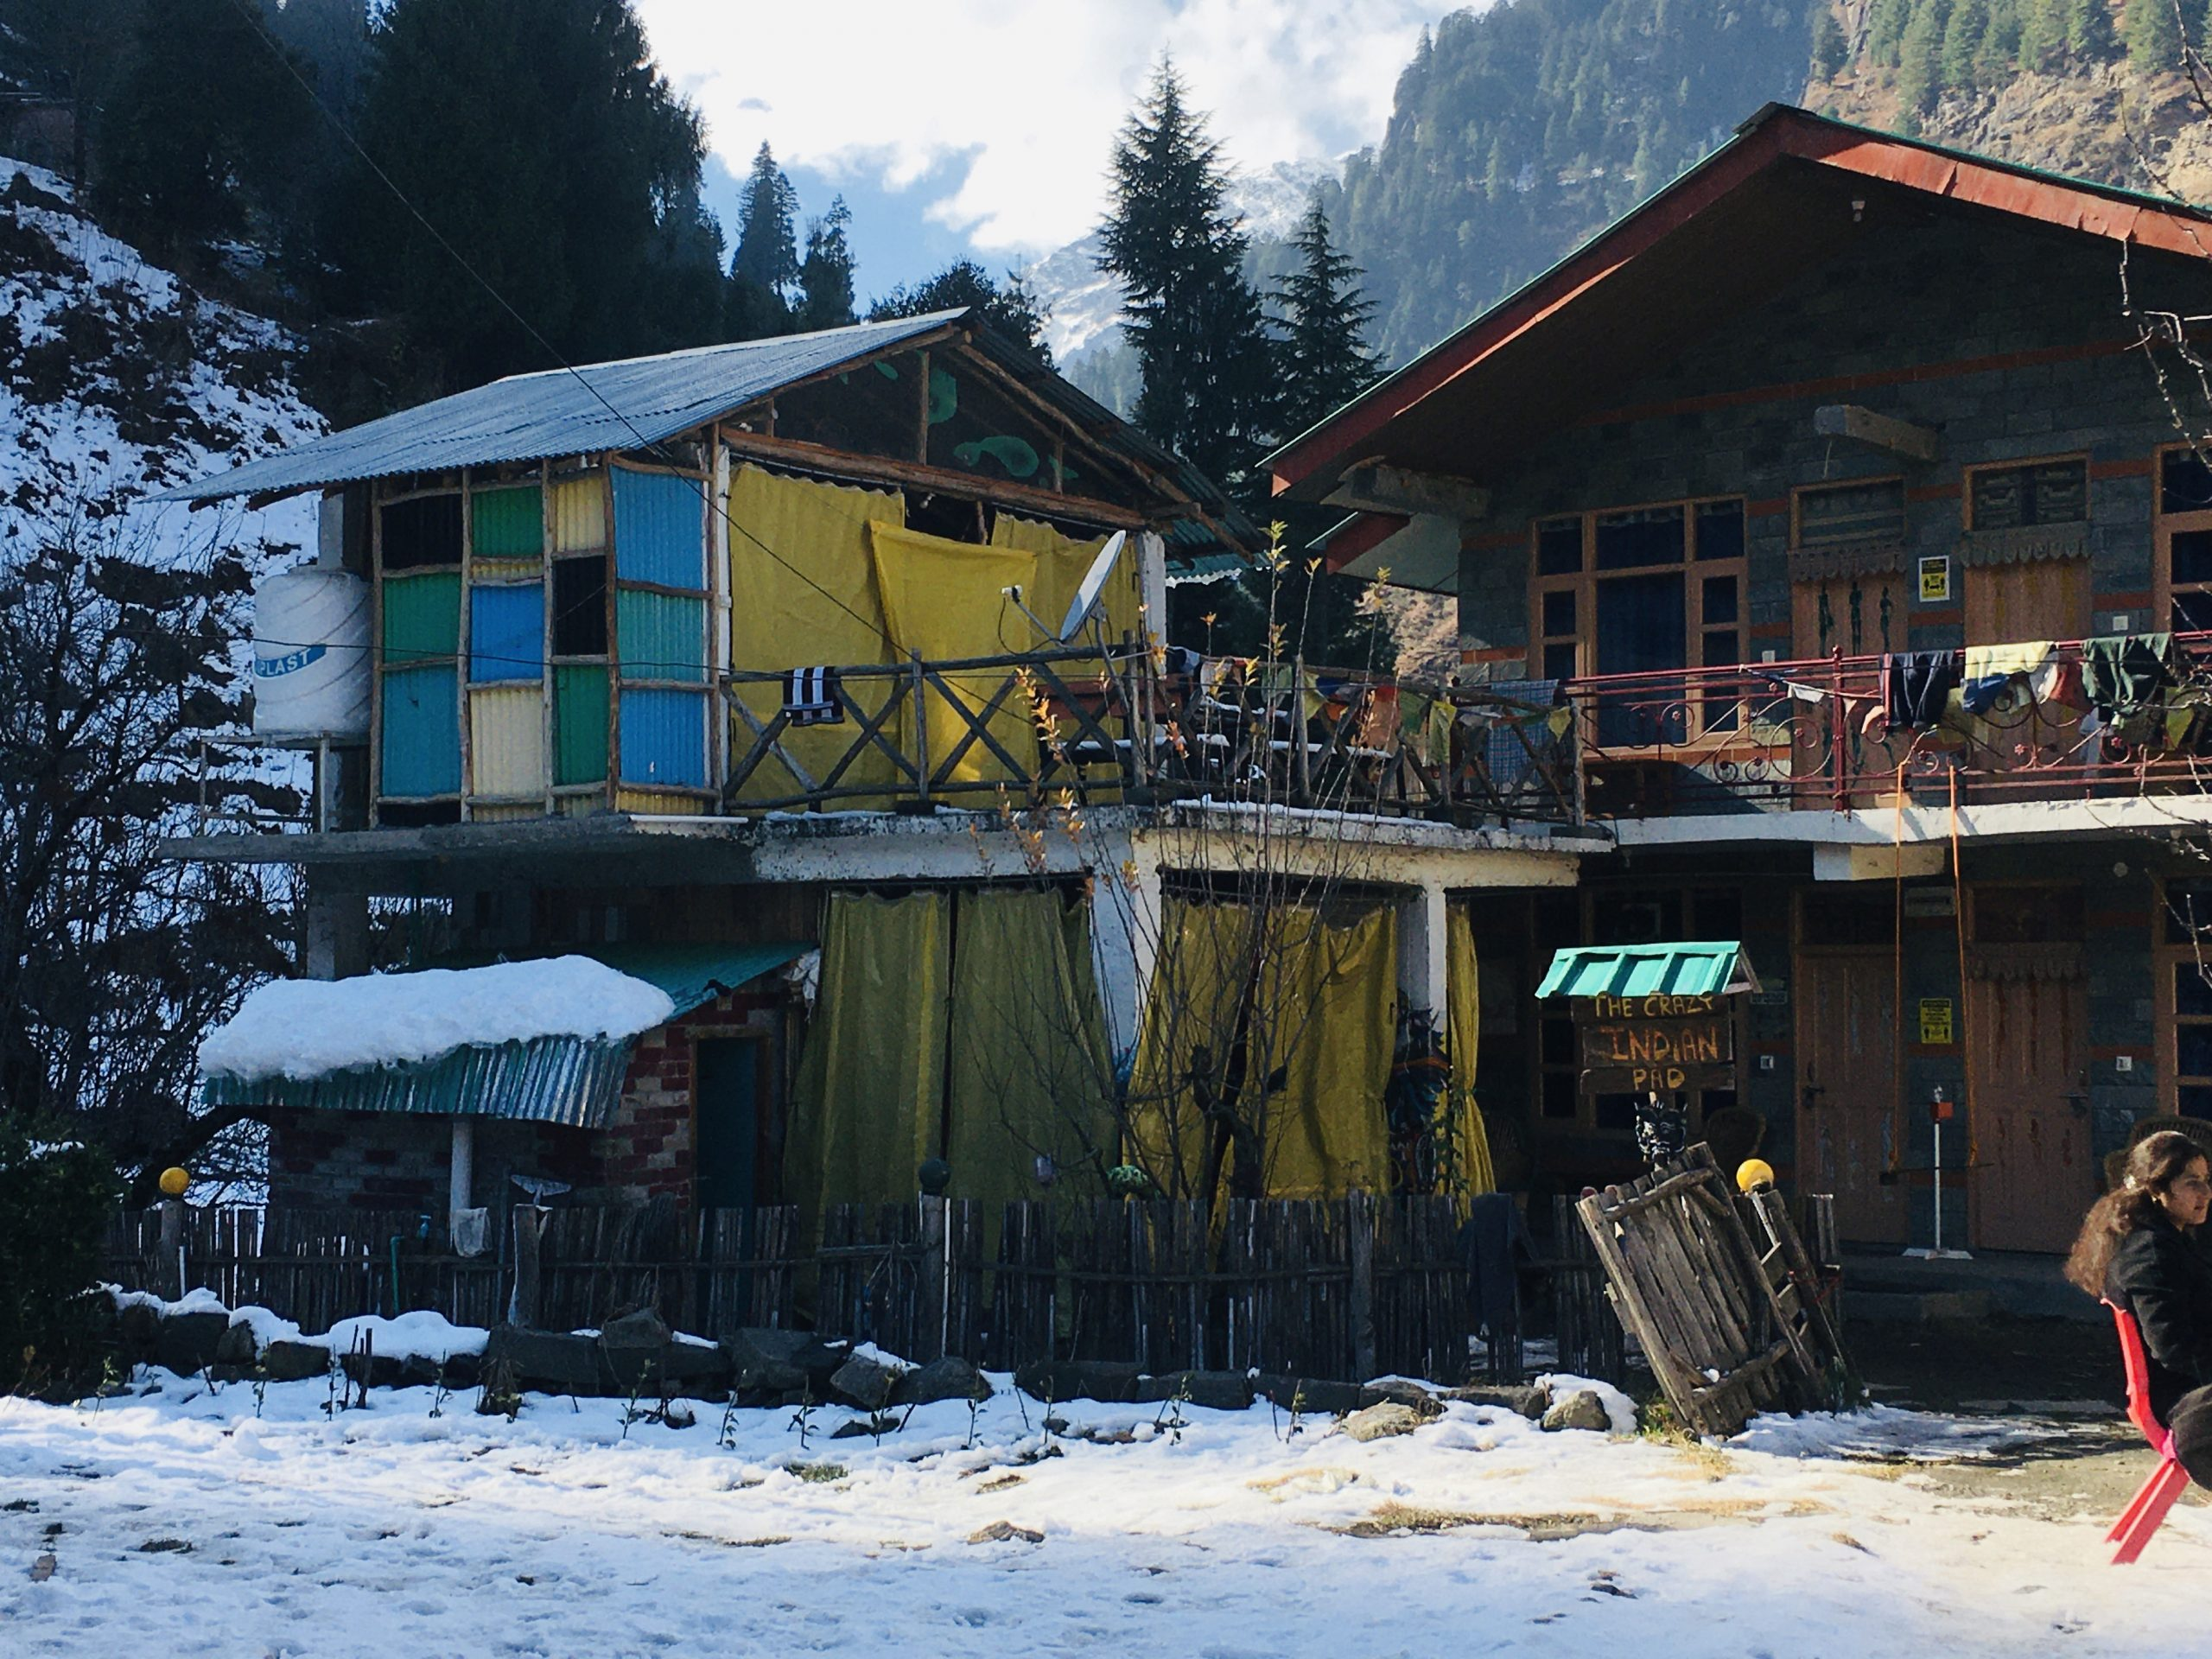 Wooden houses under snowy mountains